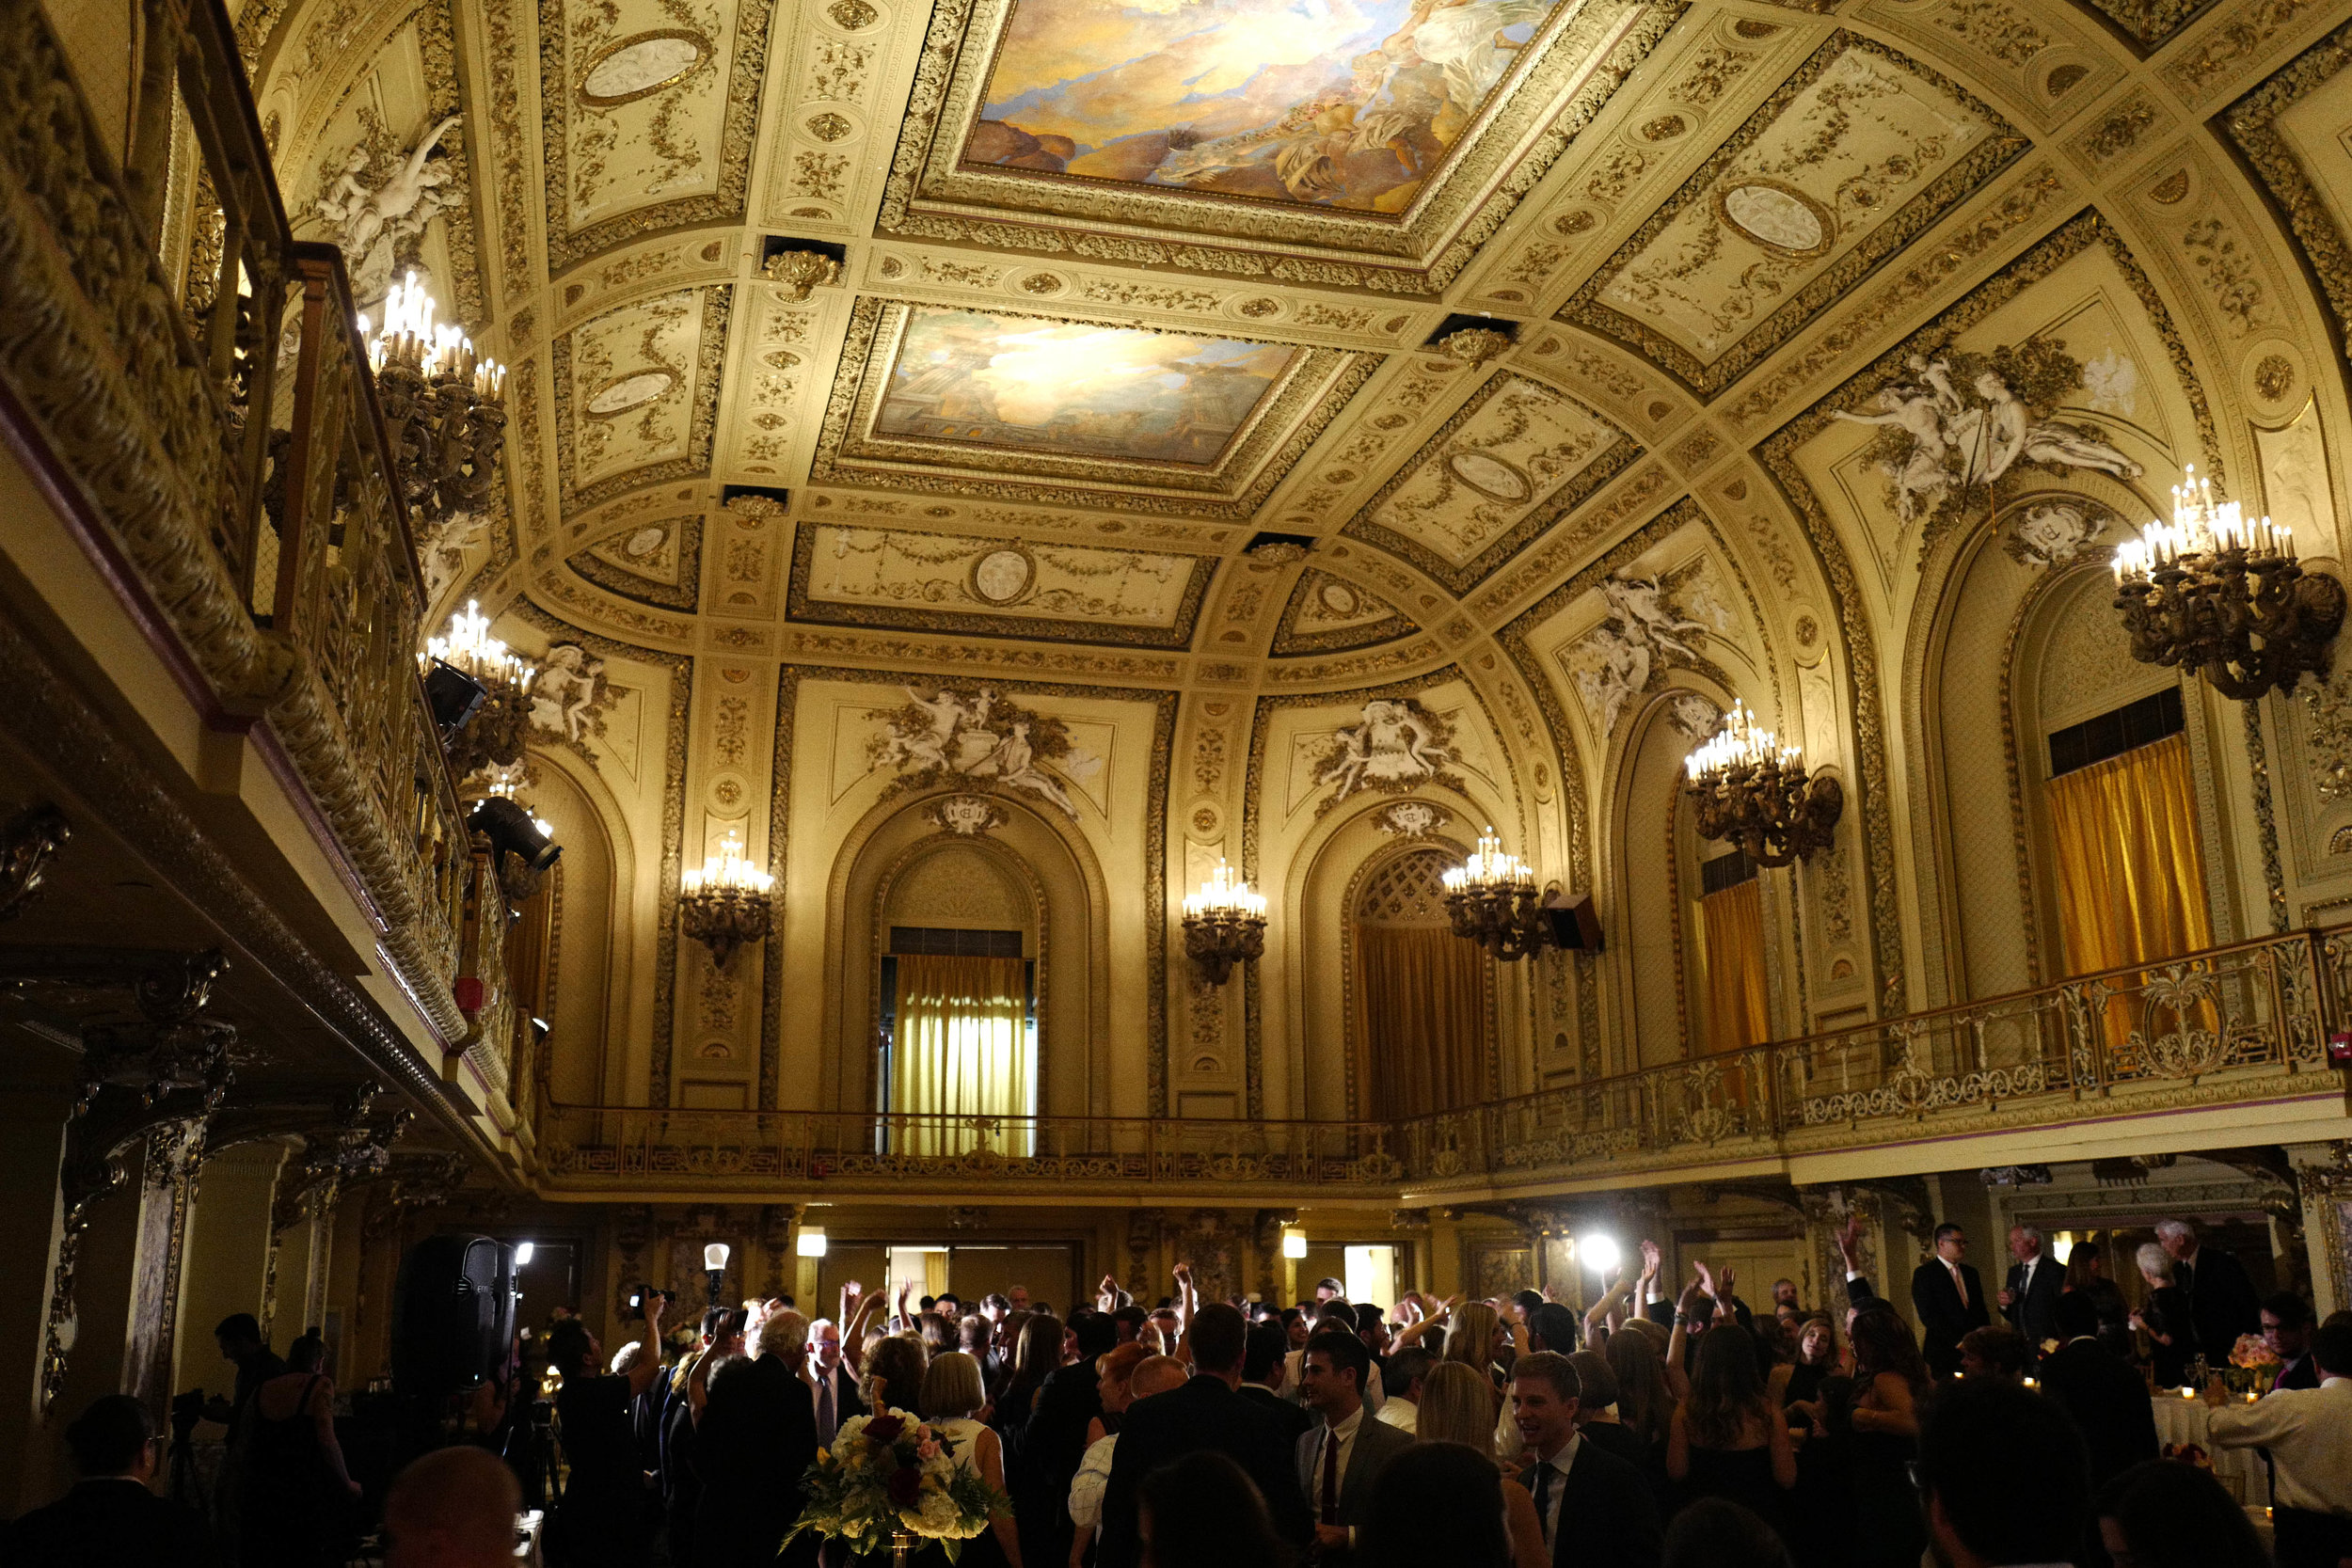 The Gold Room ceilings are breathtaking!